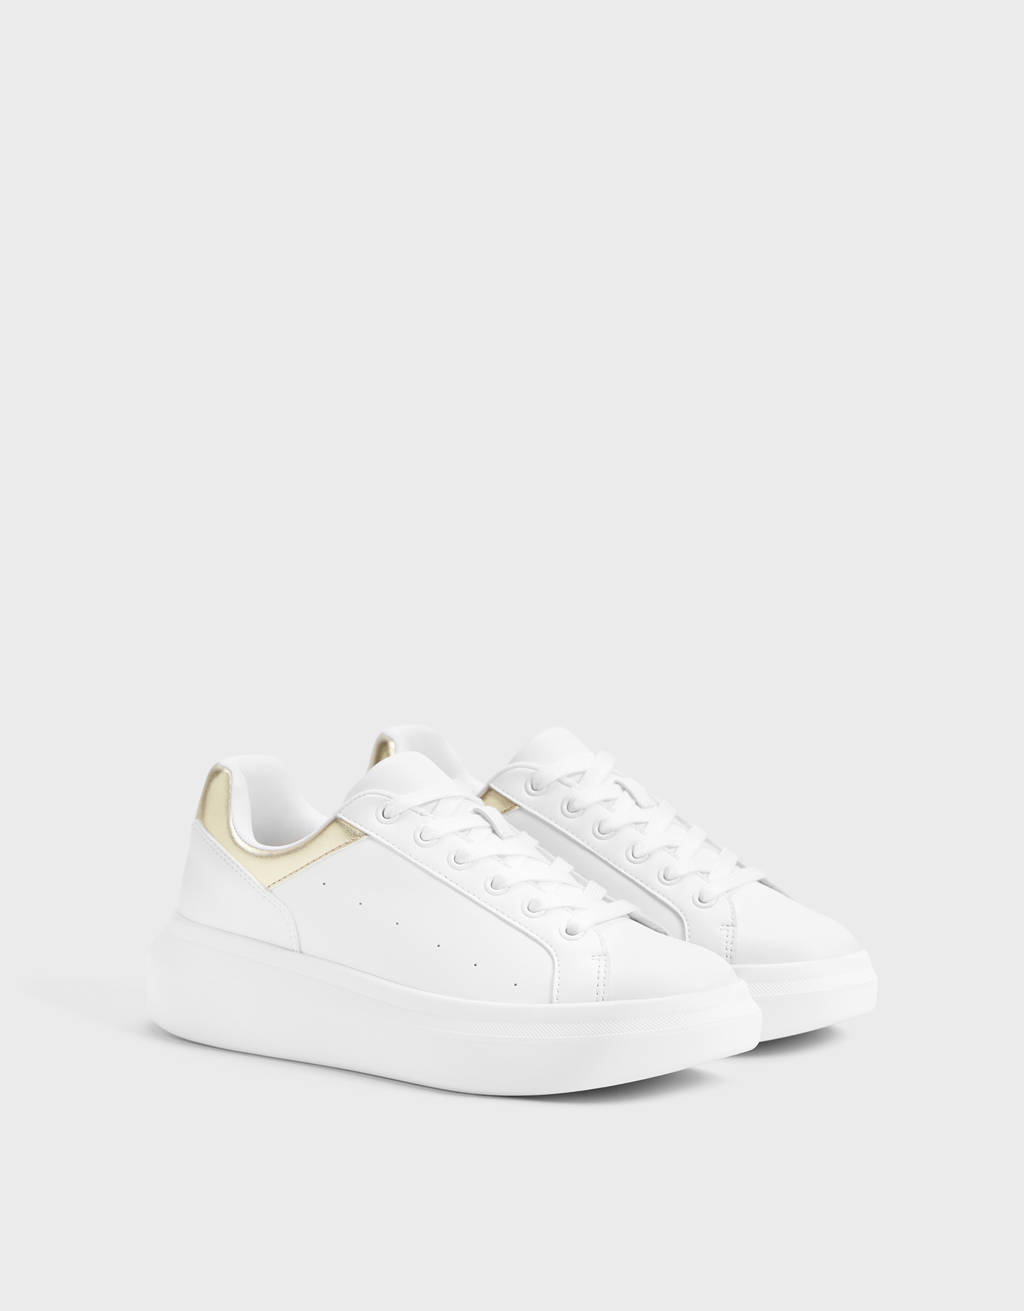 Platform sneakers with metallic detail